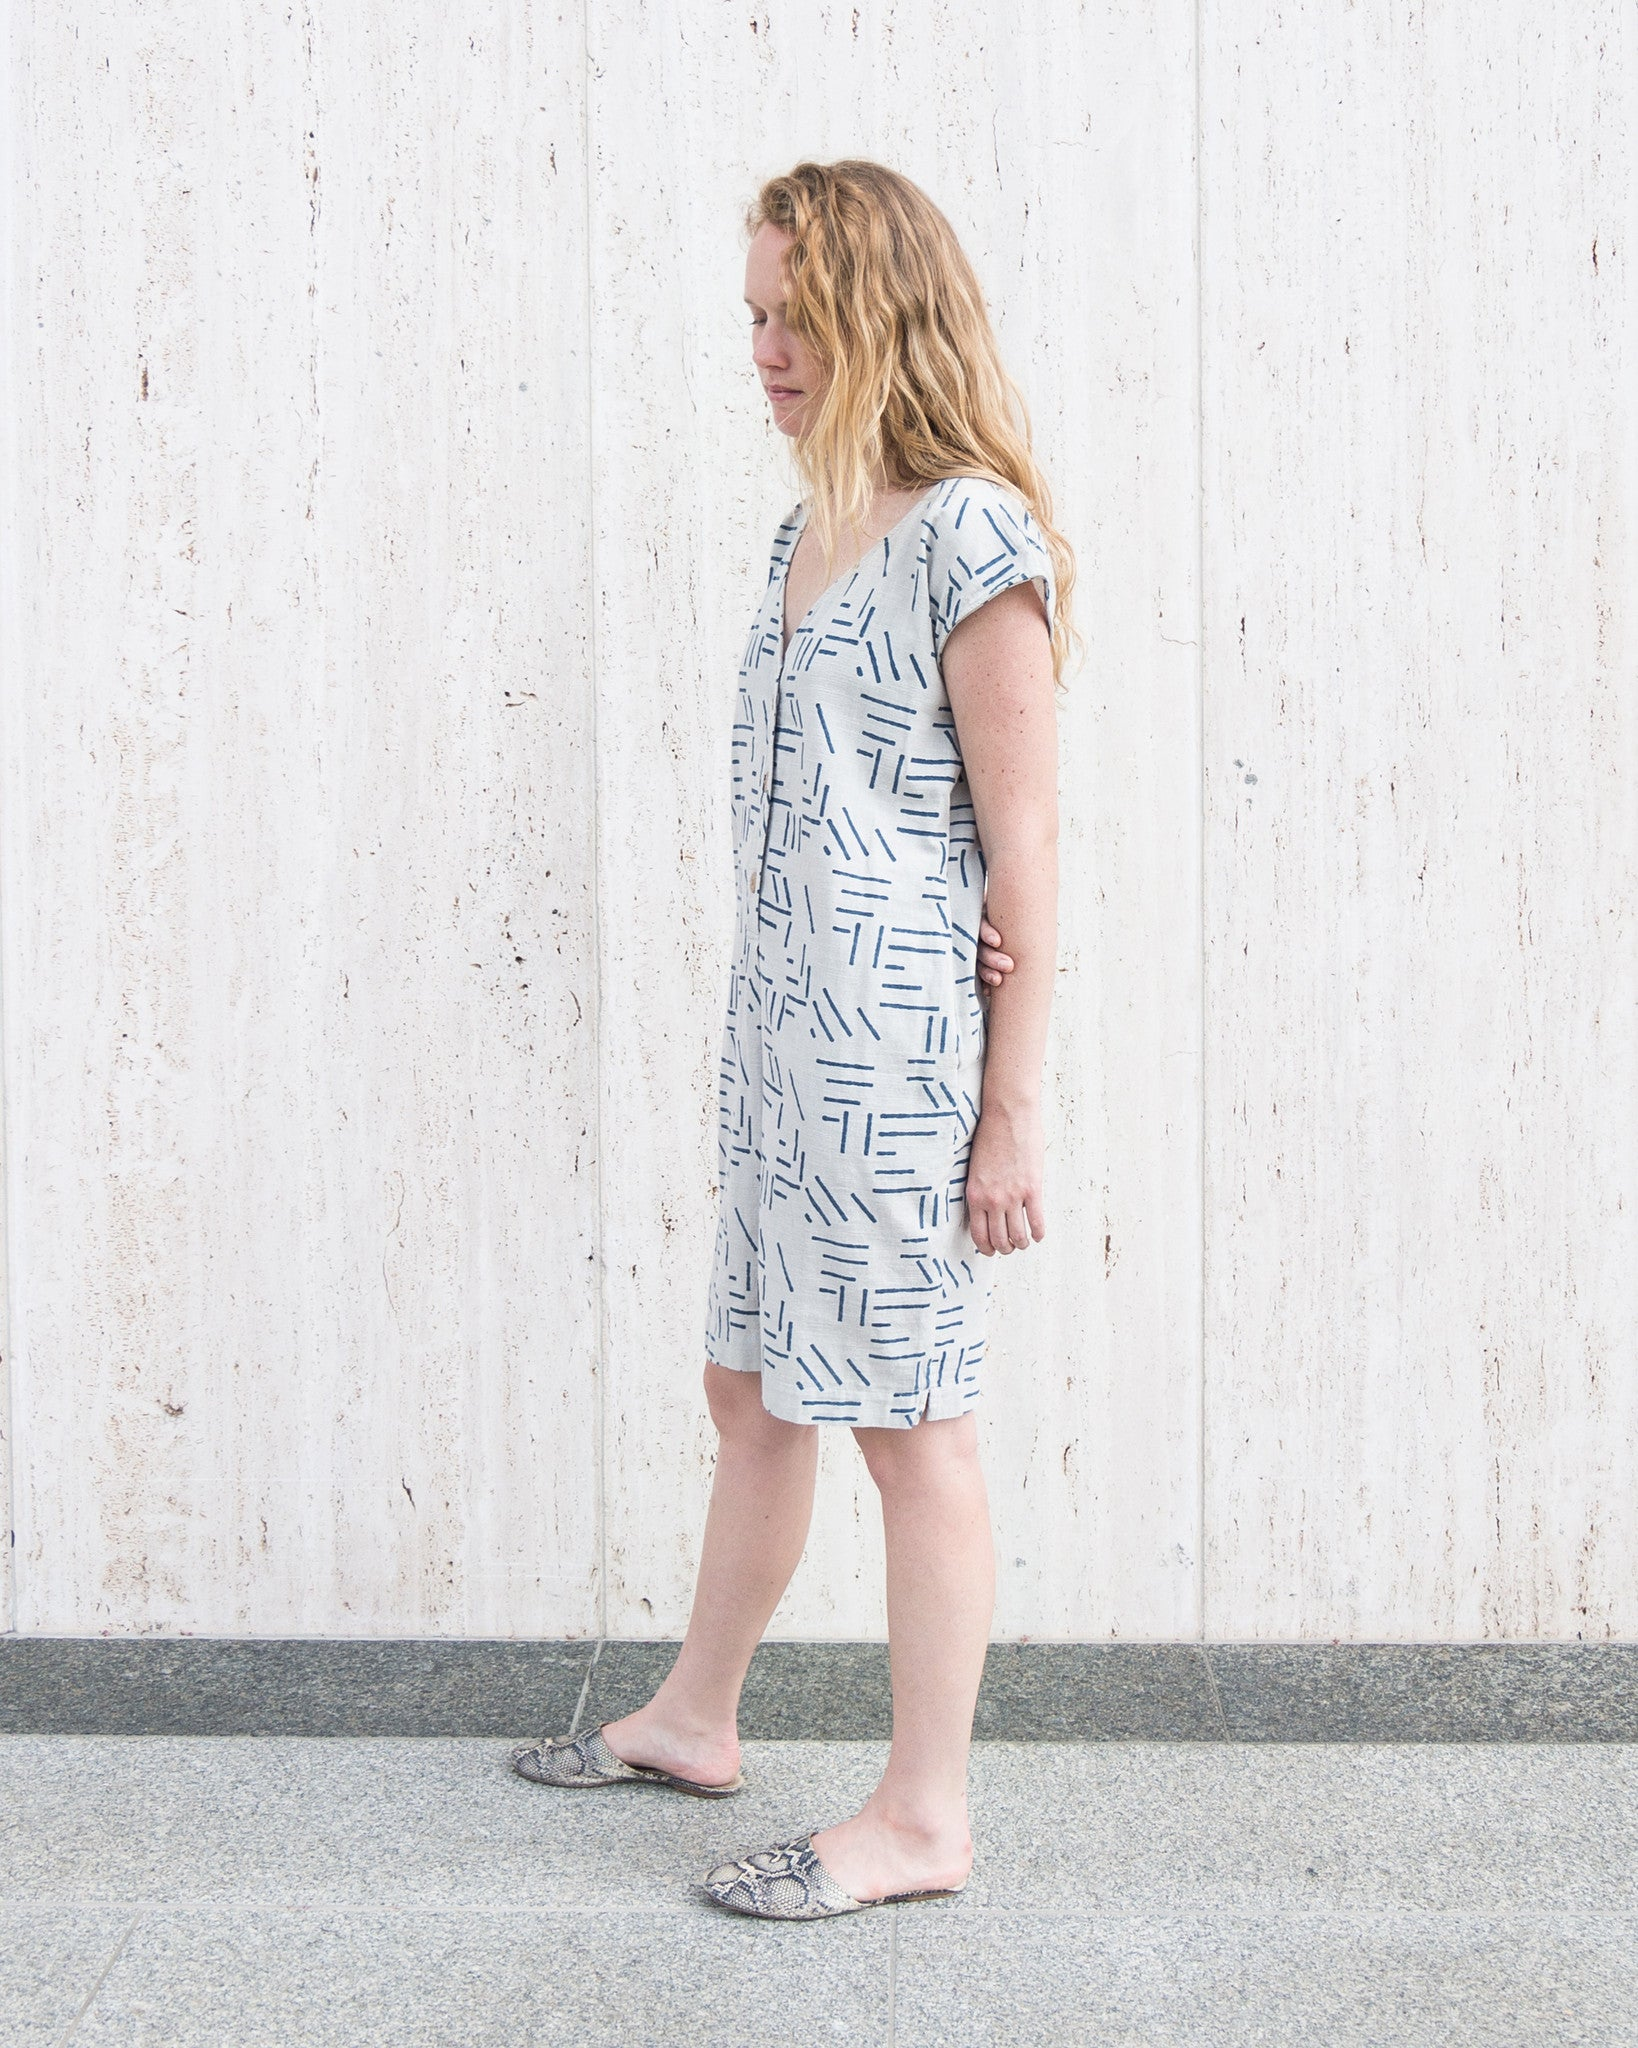 esby-apparel-womenswear-designed-in-austin-made-in-usa-caroline-shift-dress-seek-collective